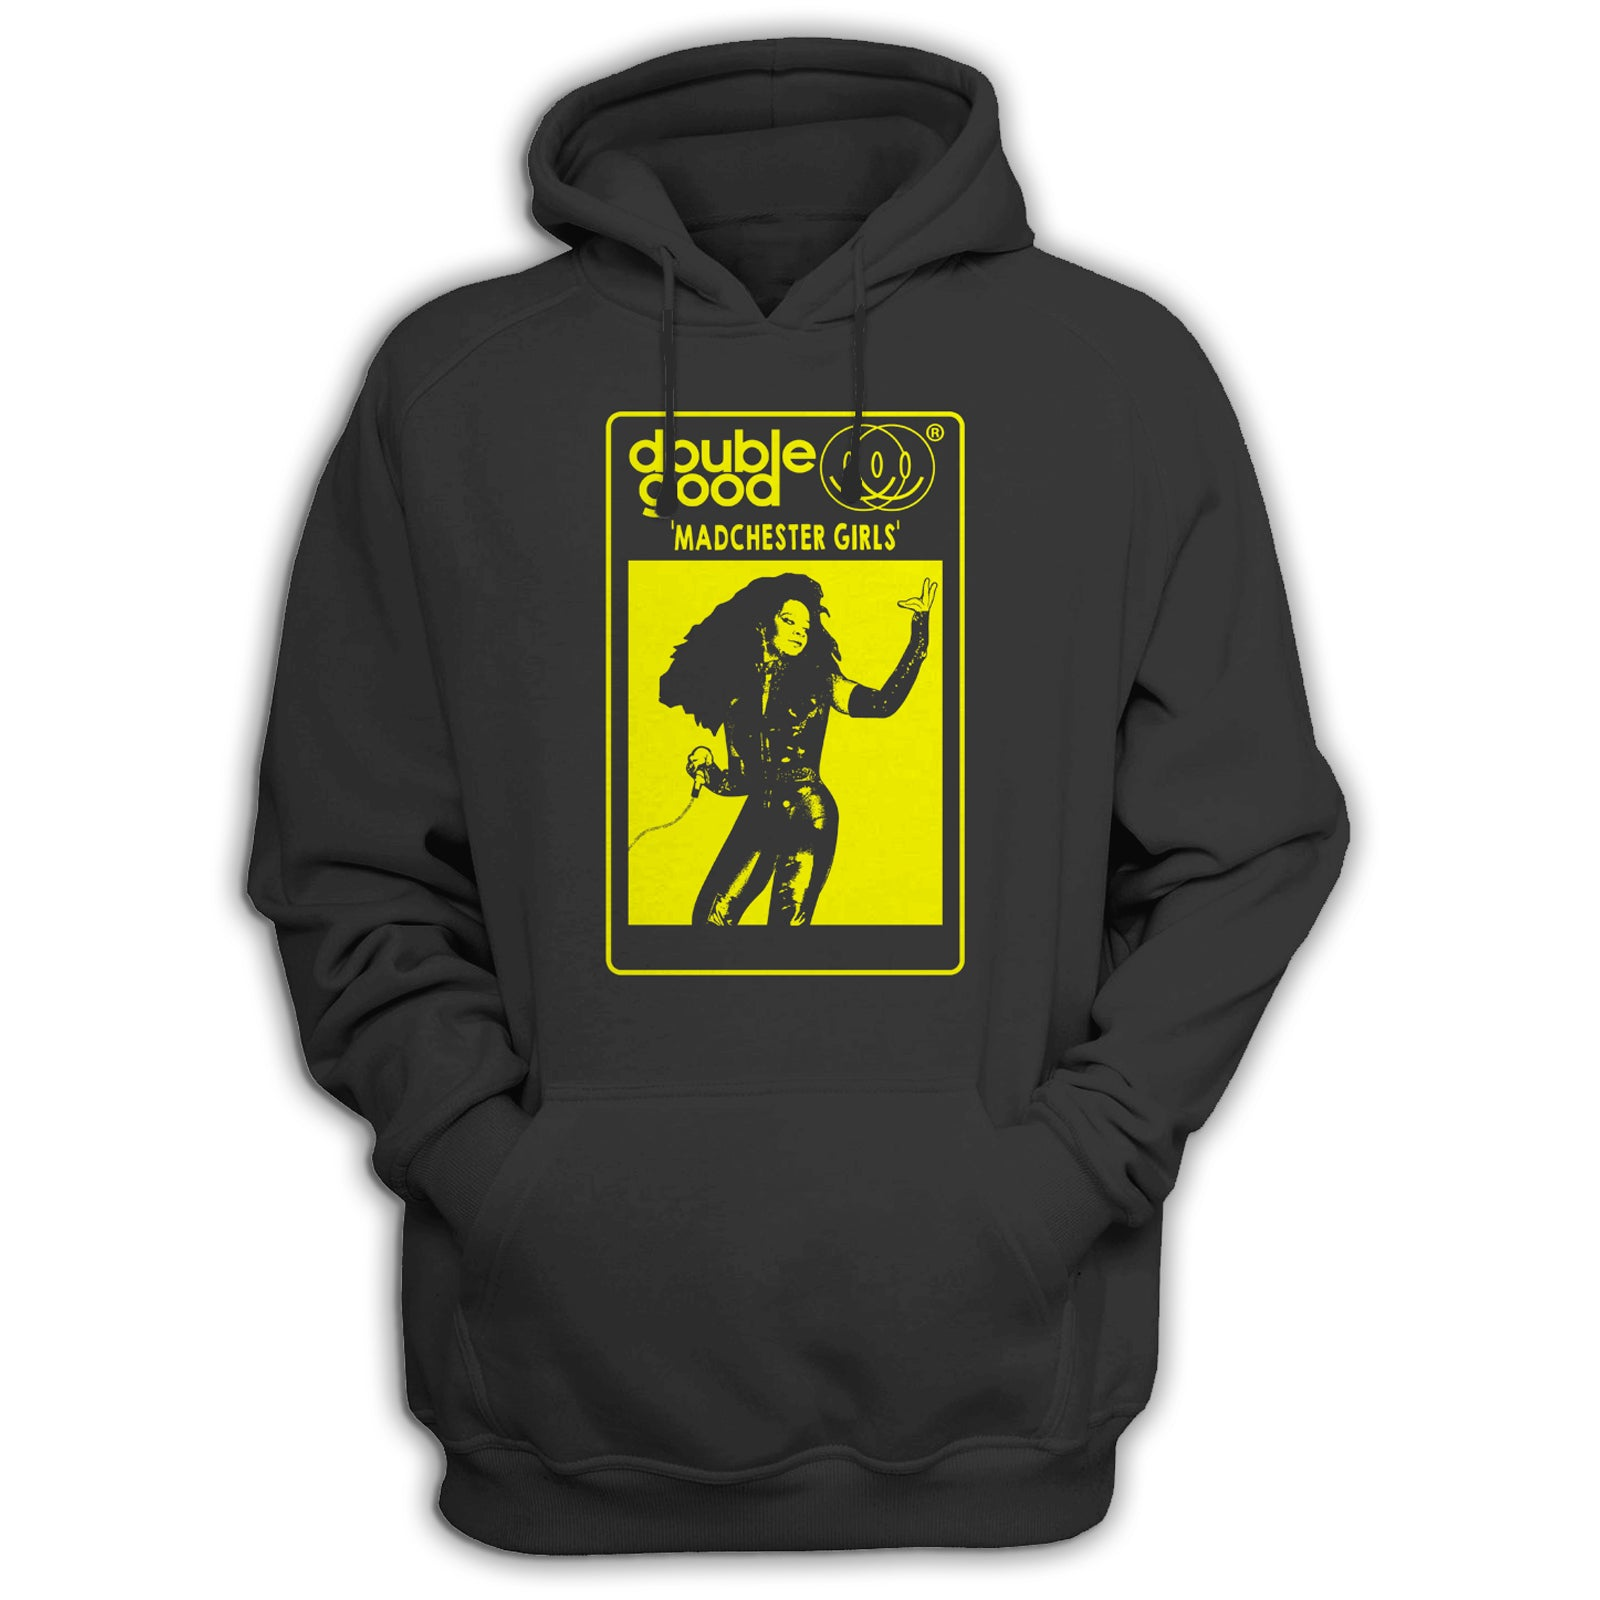 Madchester Girls Hoodie